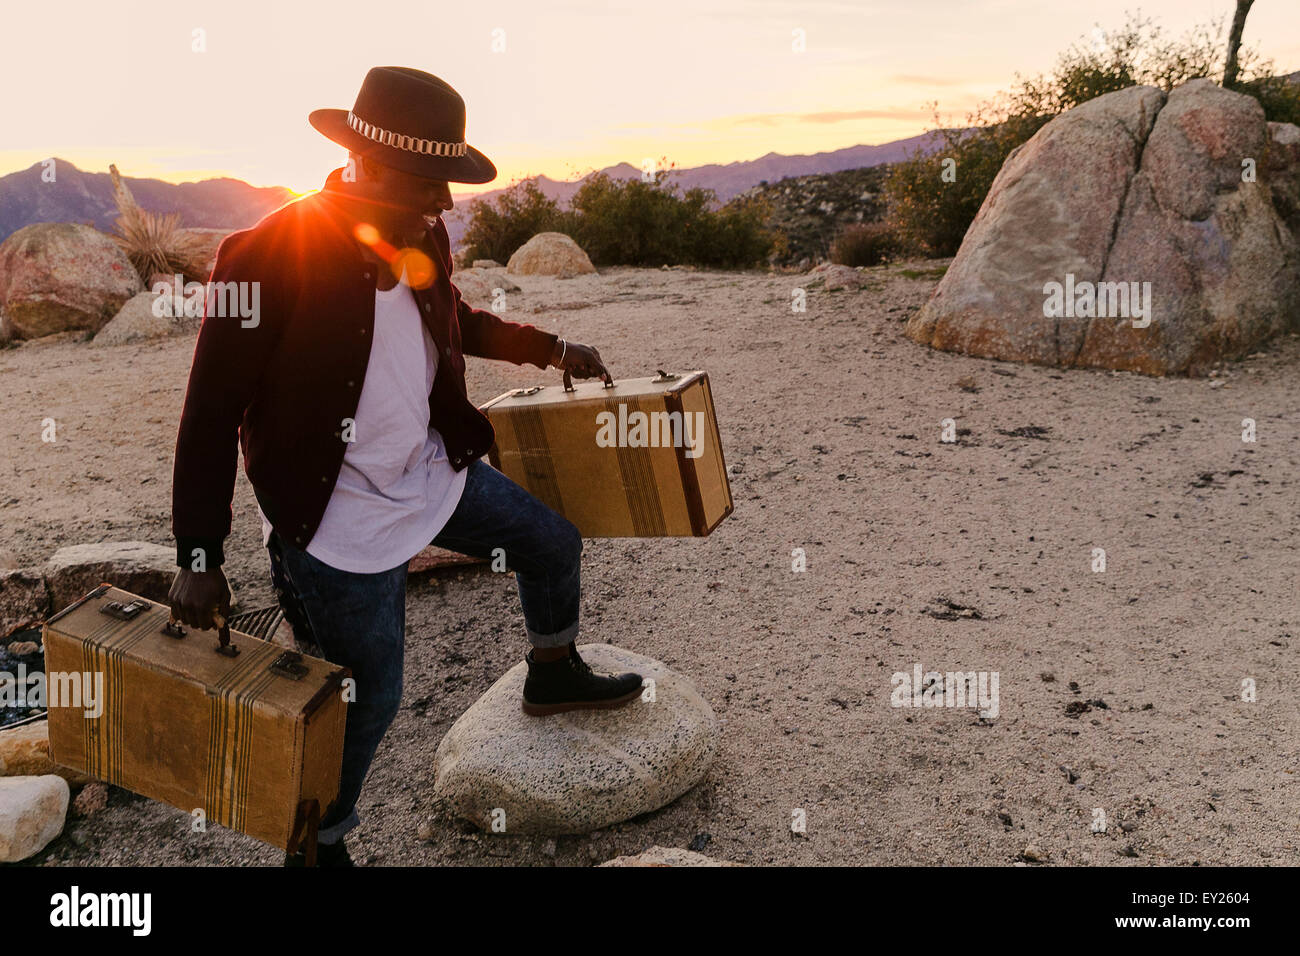 Mid adult man unloading road trip suitcases at sunset, Los Angeles, California, USA - Stock Image